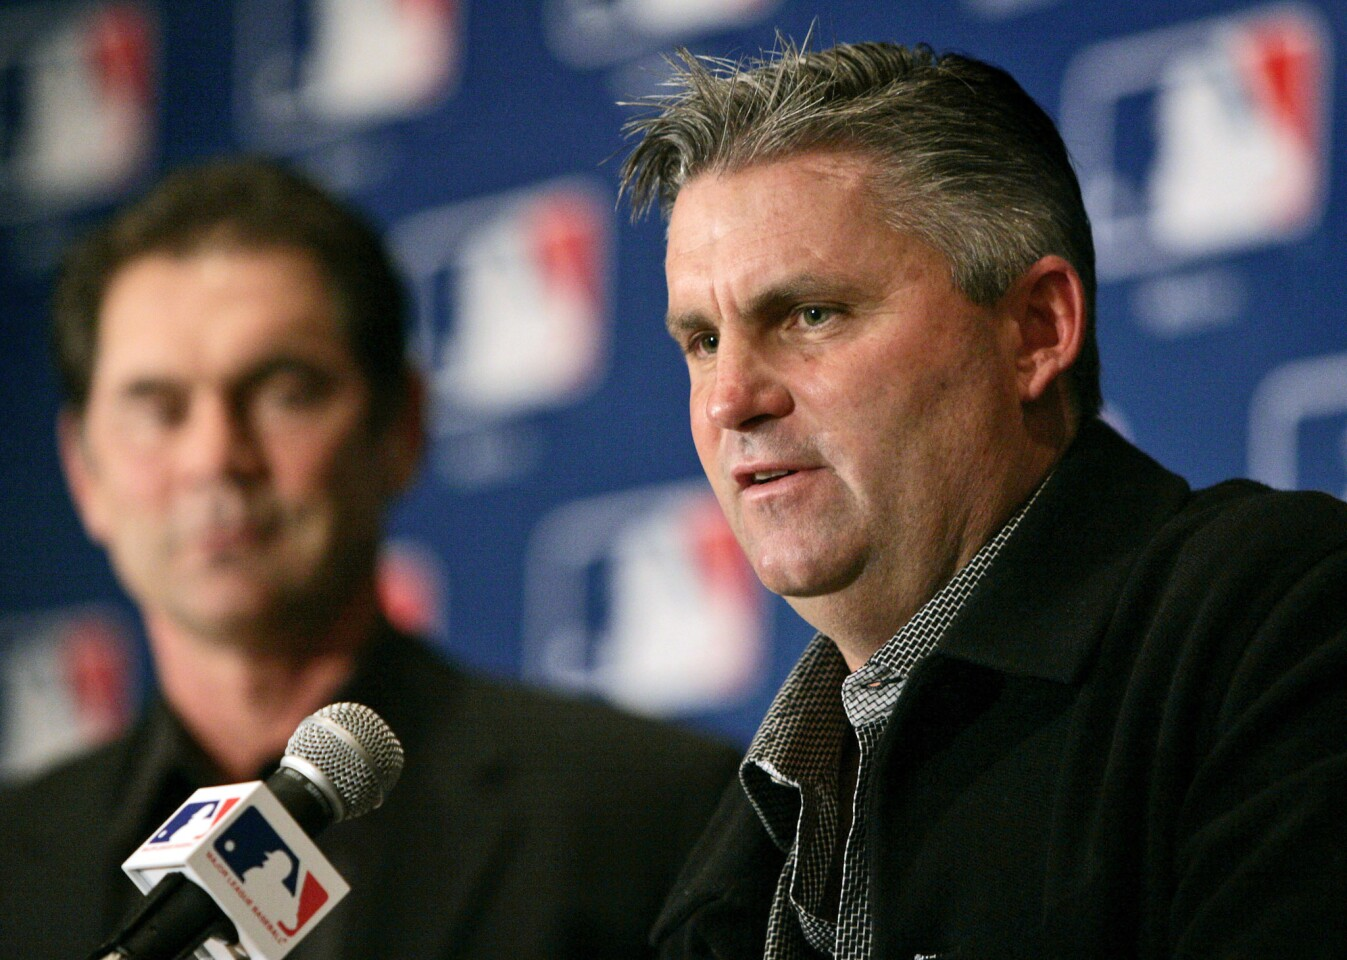 FILE - In this Dec. 7, 2005, file photo, San Diego Padres general manager Kevin Towers, right, peaks during a baseball news conference in Dallas. Towers, whose 14-year tenure as general manager of the San Diego Padres included an appearance in the 1998 World Series, died Tuesday, Jan. 30, 2018, from complications of cancer, friend and former agent Barry Axelrod said. He was 56. (AP Photo/Tony Gutierrez, File)